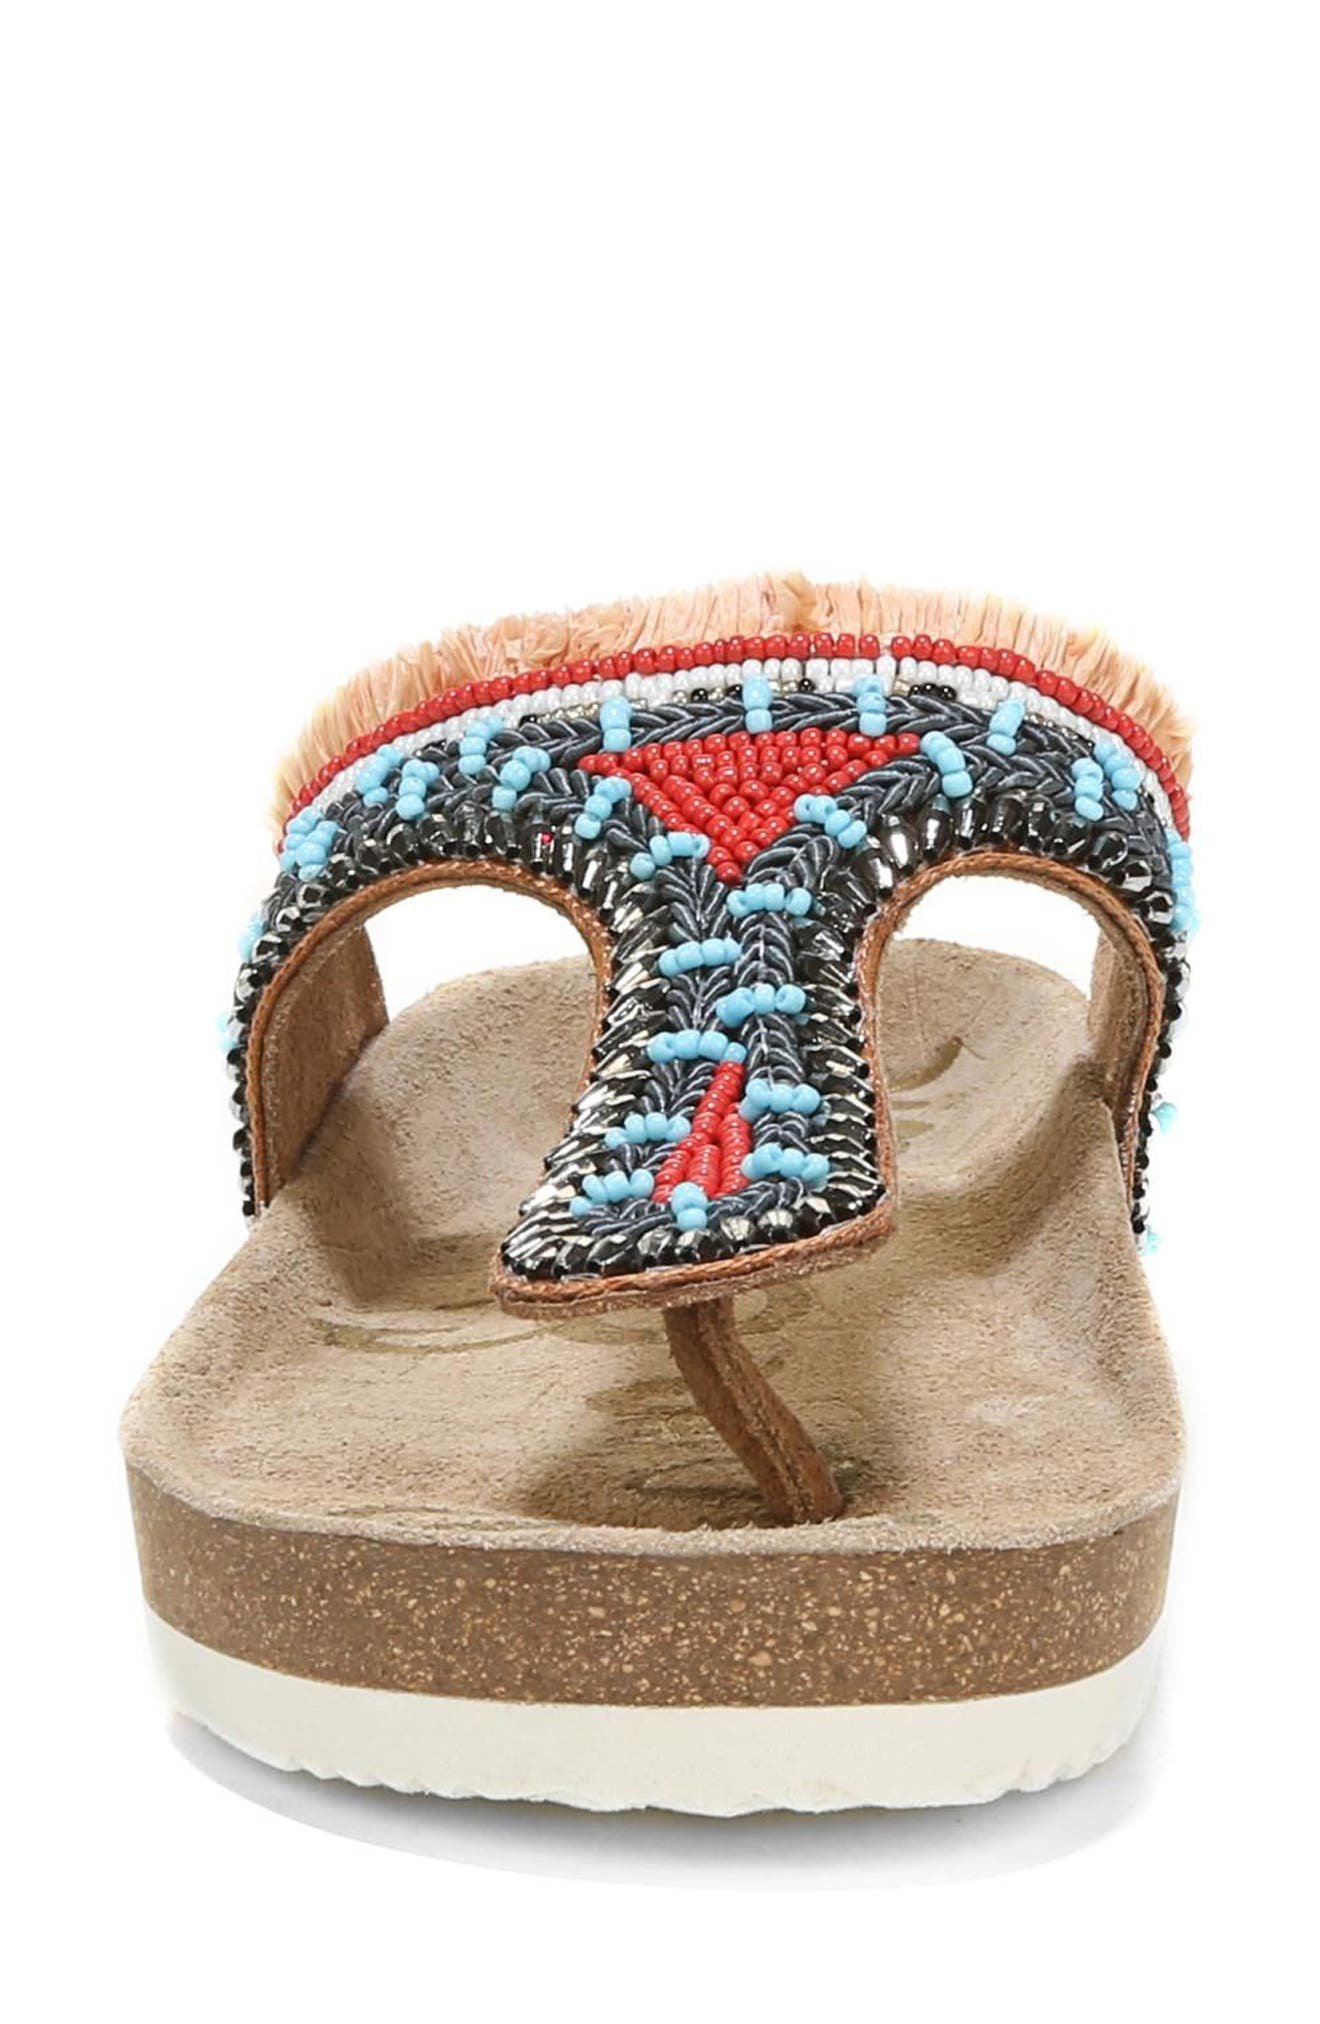 Olivie Beaded Flip Flop,                             Alternate thumbnail 4, color,                             SADDLE/ BLUE MULTI